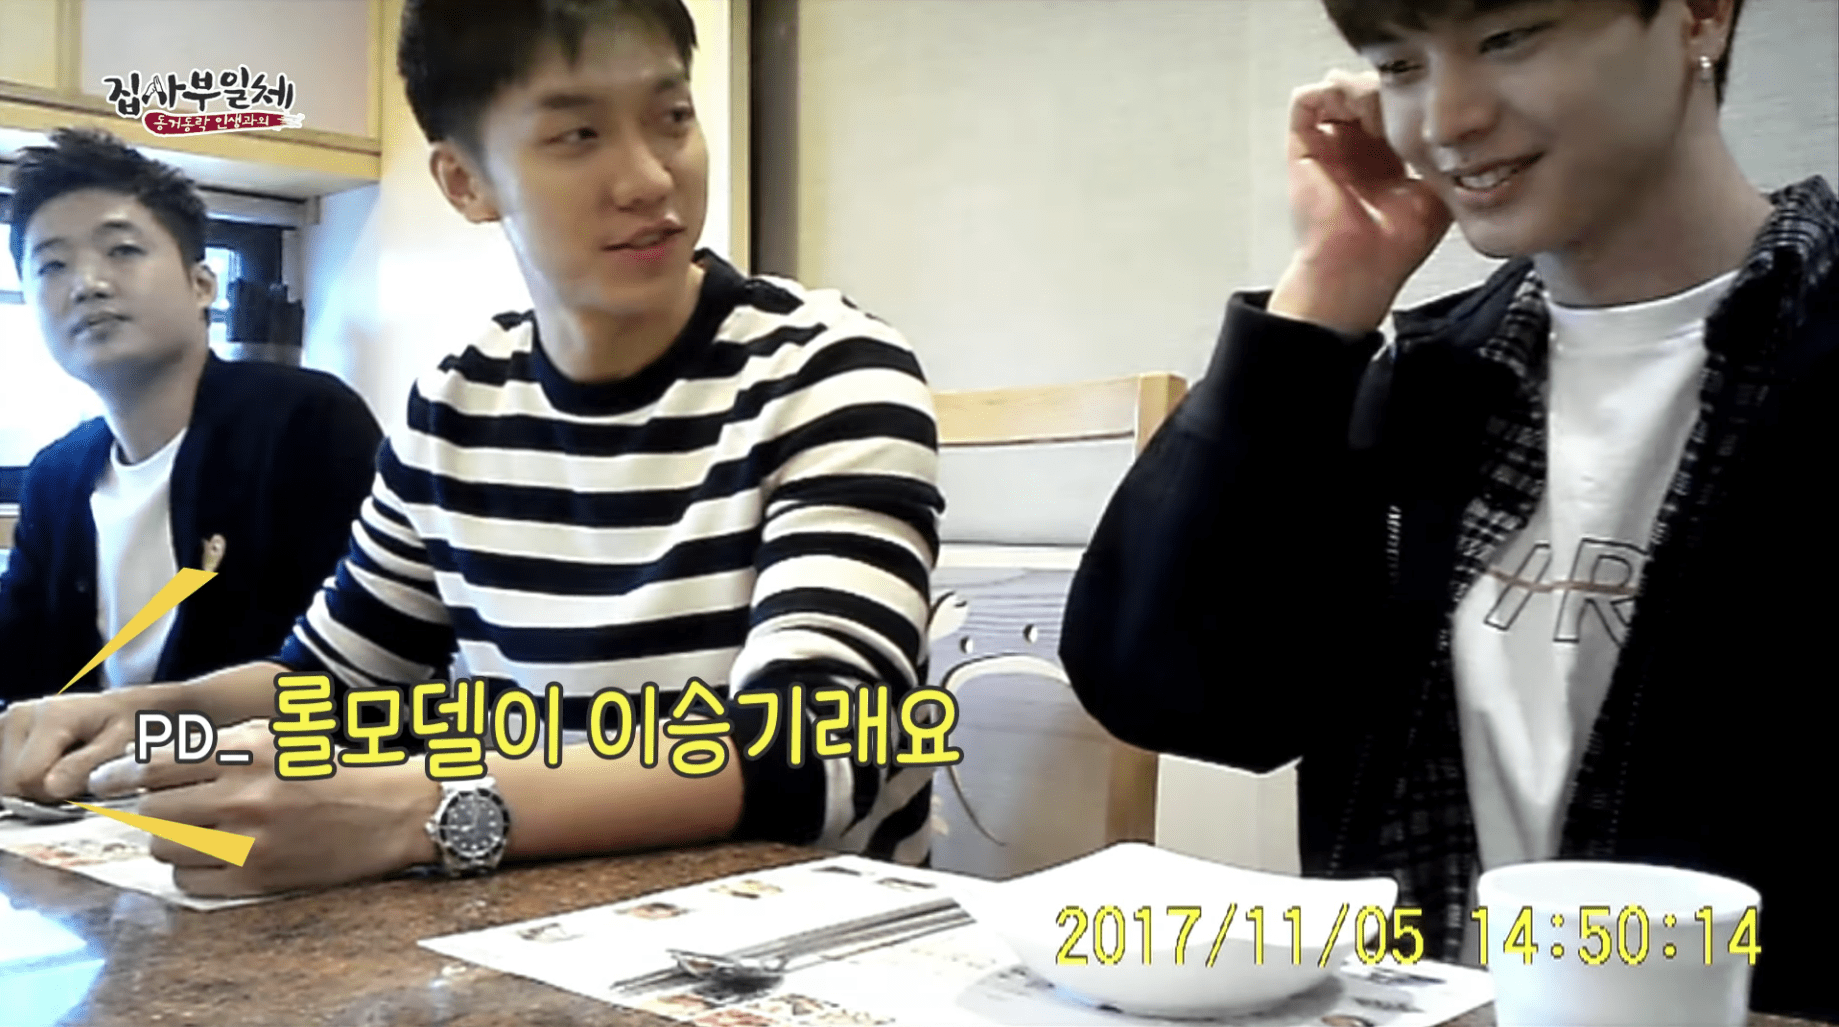 Watch: BTOB's Yook Sungjae Is A Total Fanboy Of Lee Seung Gi In New Variety Show Teaser